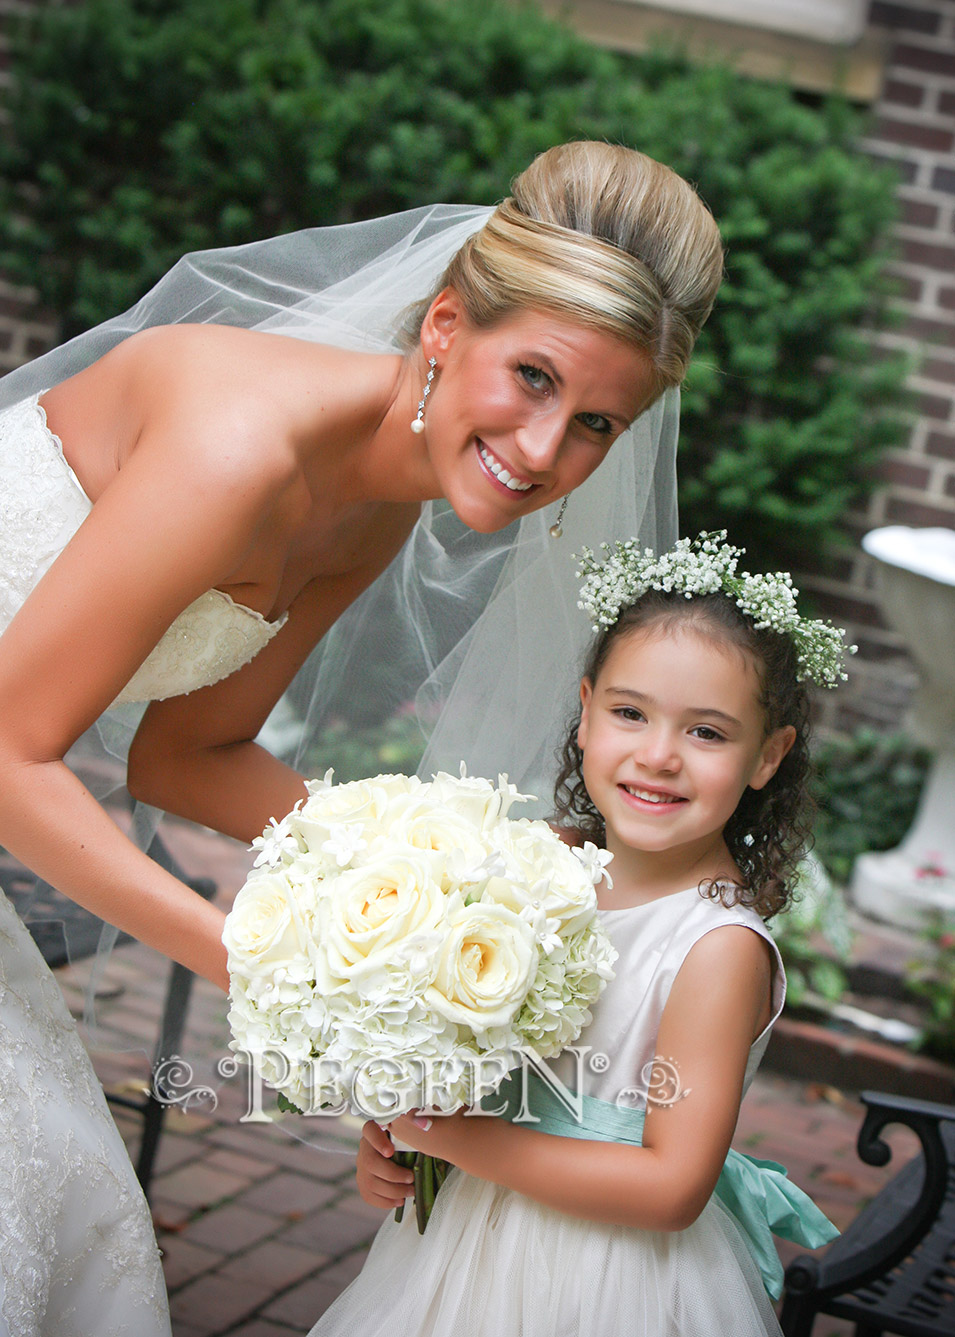 Flower girl dress style 356 in Ivory Bisque and Aqua | Pegeen